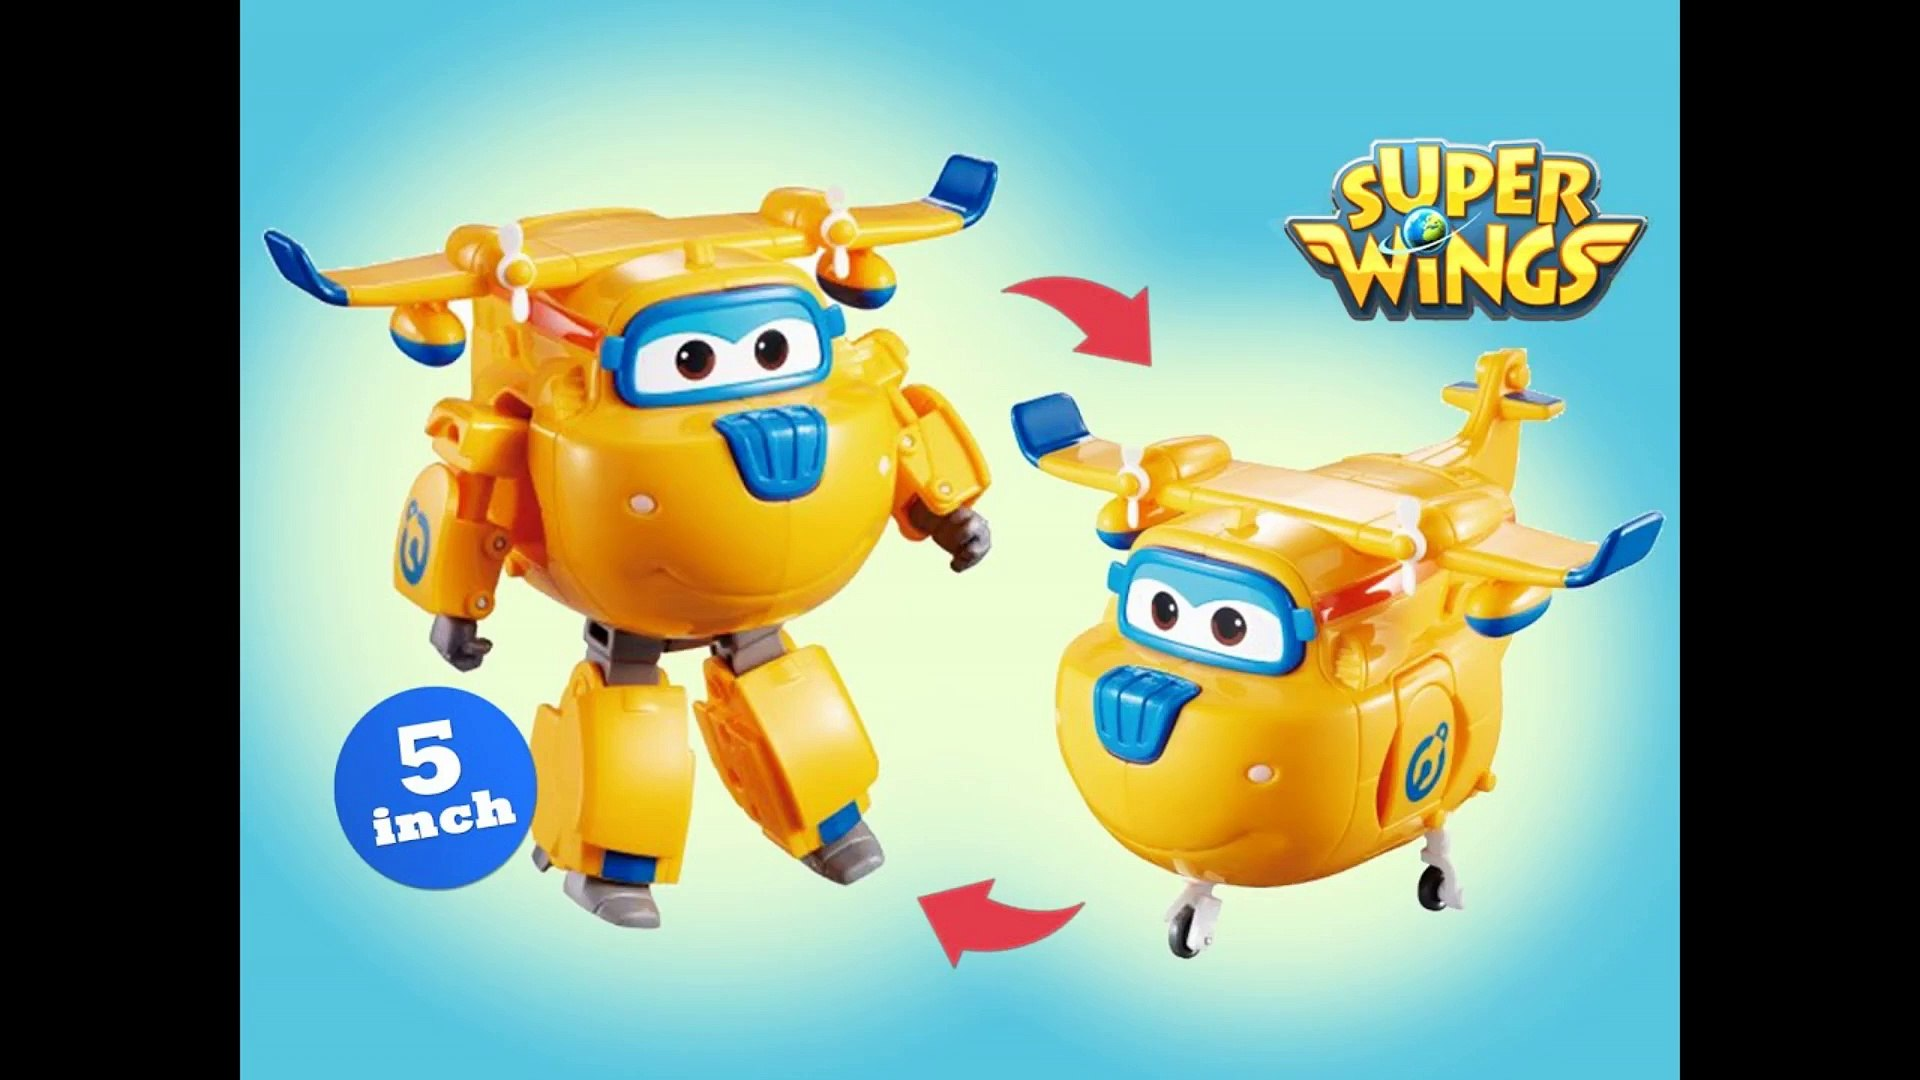 Super Wings Donnie Transforming Robot Airplane 출동슈퍼윙스 신제품 장난감 - Unboxing Demo Review